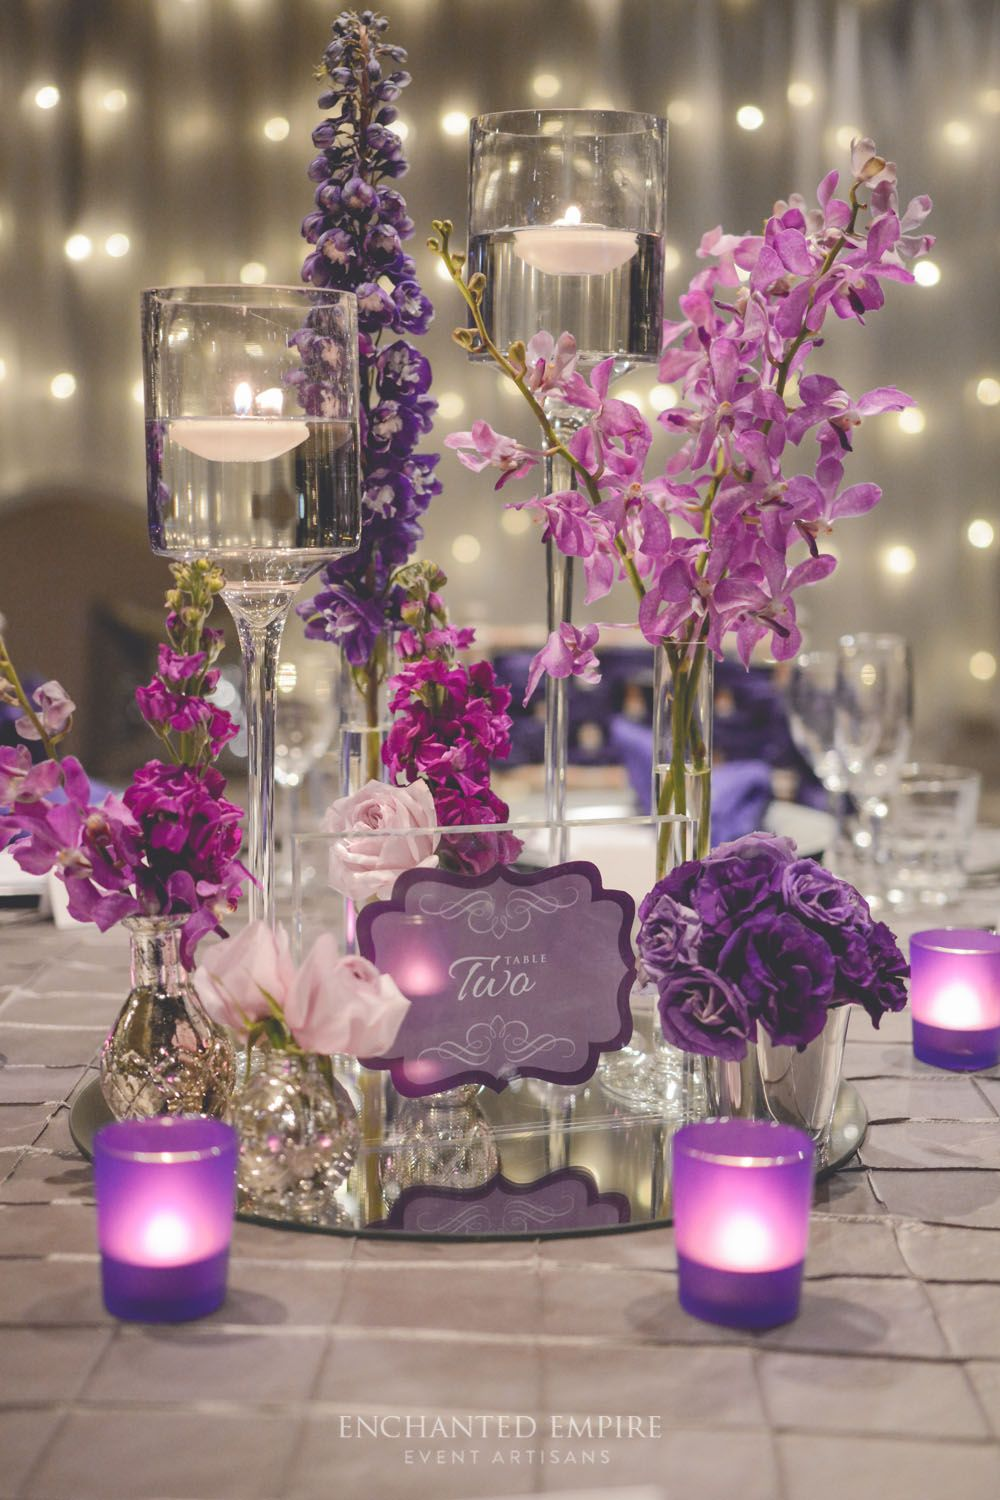 With fairy light walls, the light from this wedding illuminated an assortment of purple florals on exquisite silver pintuck tablecloths. Silver charger plates, ornate napkin rings and purple frosted tealights were accentuated by custom designed stationery. Menus, table numbers and place cards were adorned with a custom purple wax seal. The intimate and romantic style our couple strived for was finished with Limewash Tiffany chairs dressed in crushed taffeta sashes…